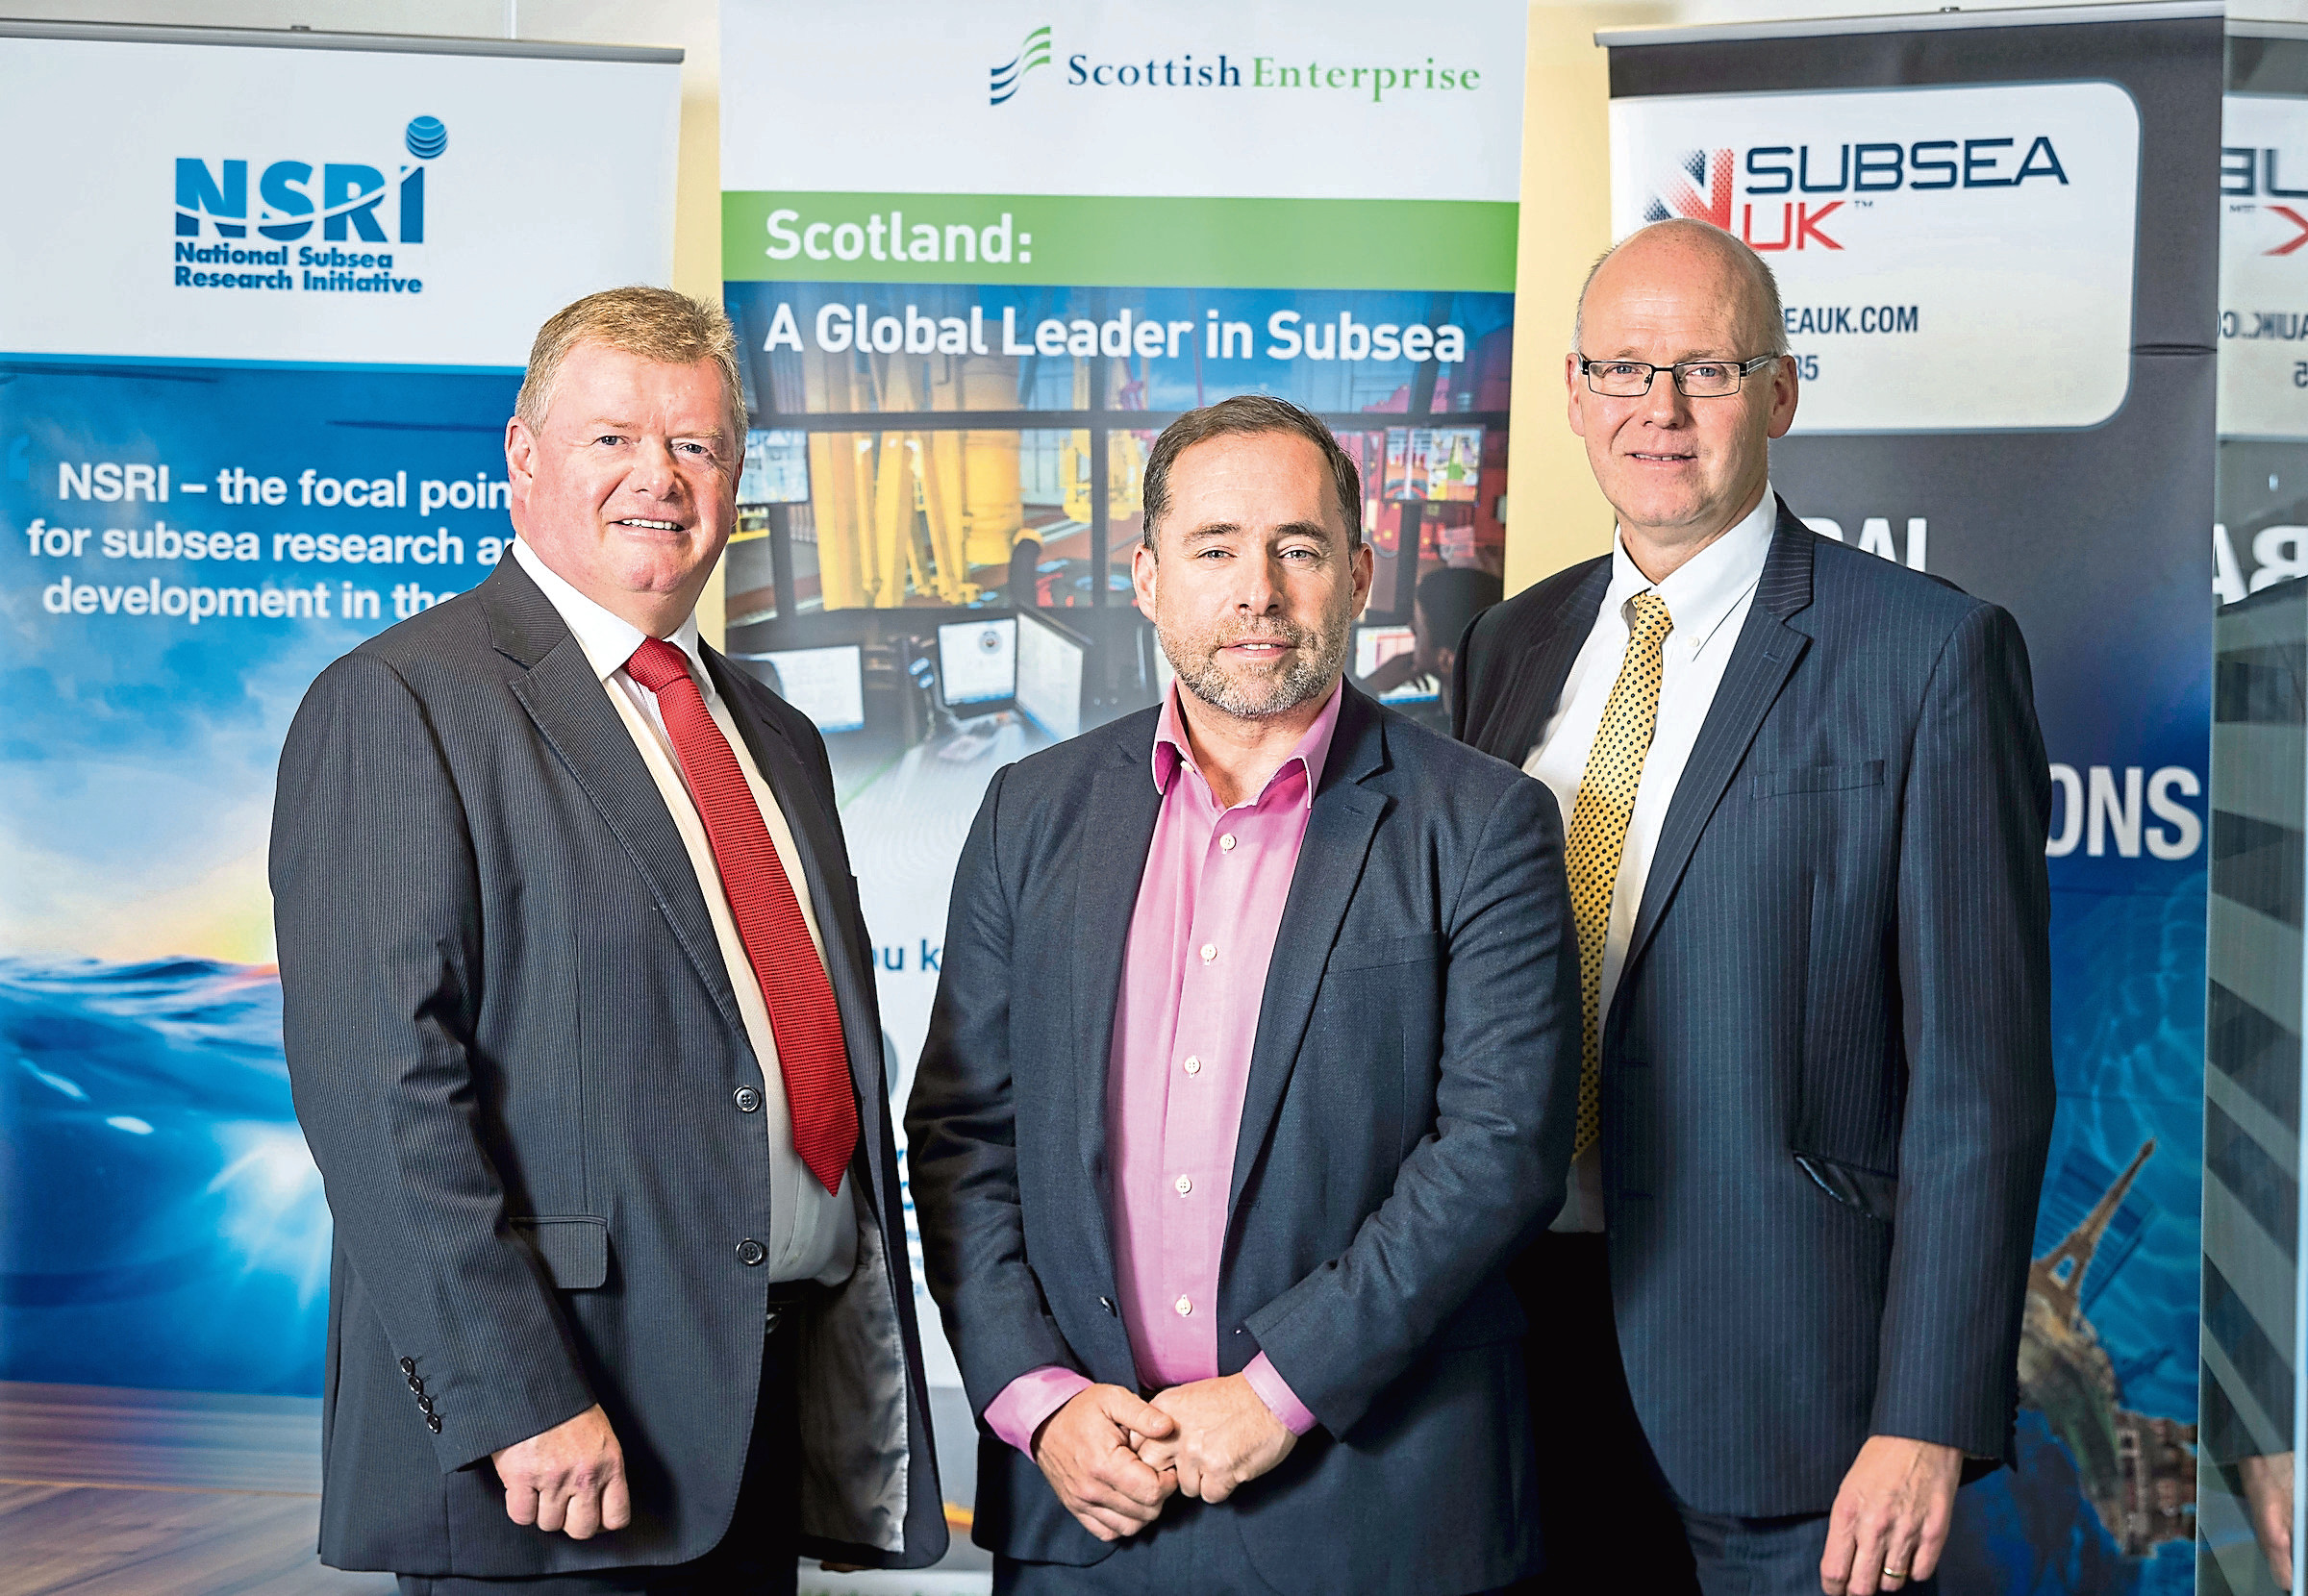 L- R: Tony Laing of NSRI, David Rennie of Scottish Enterprise and Neil Gordon of Subsea UK.  Picture from Subsea UK